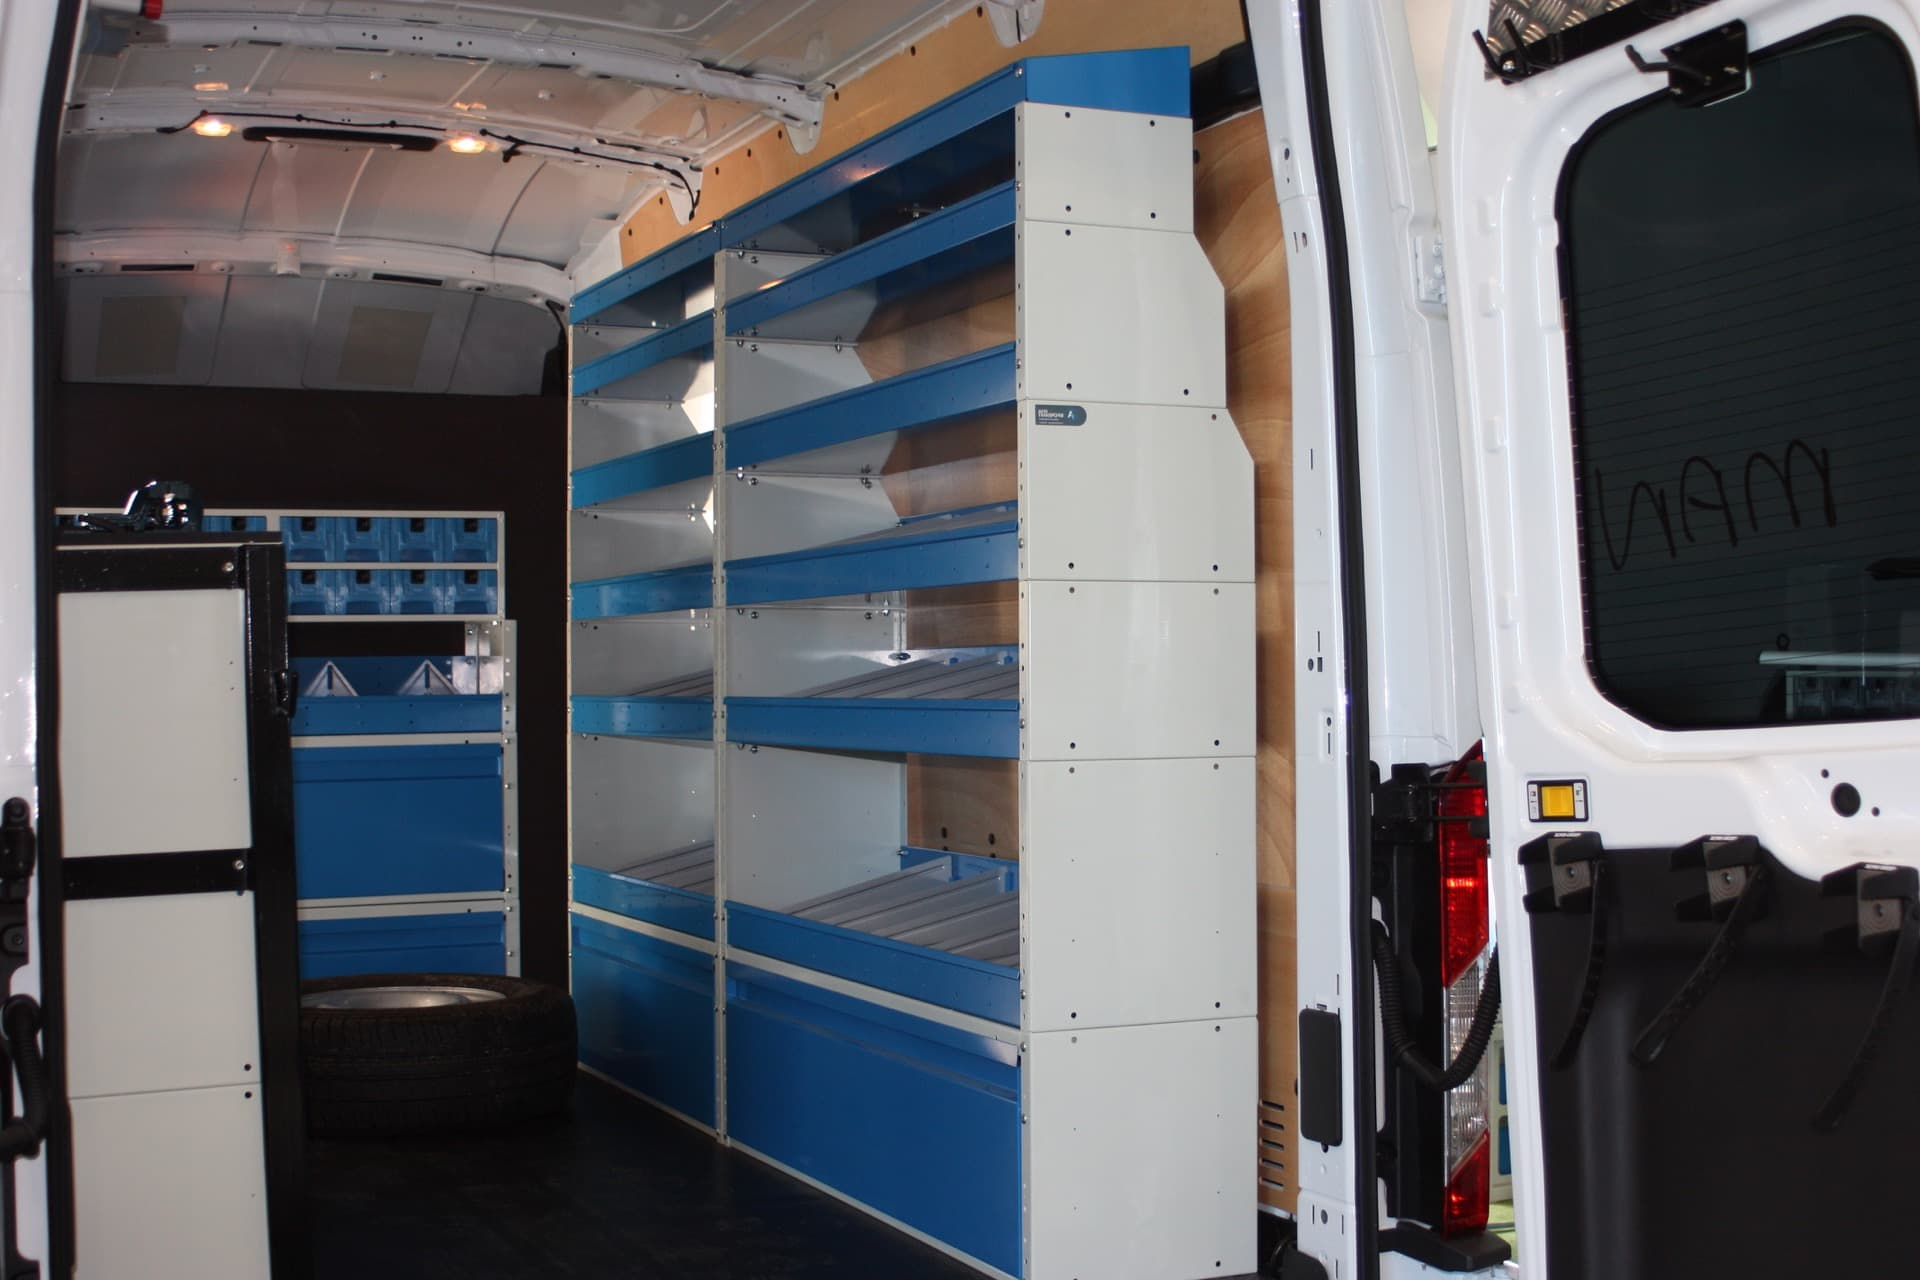 Industrial shelving system for parts in work van